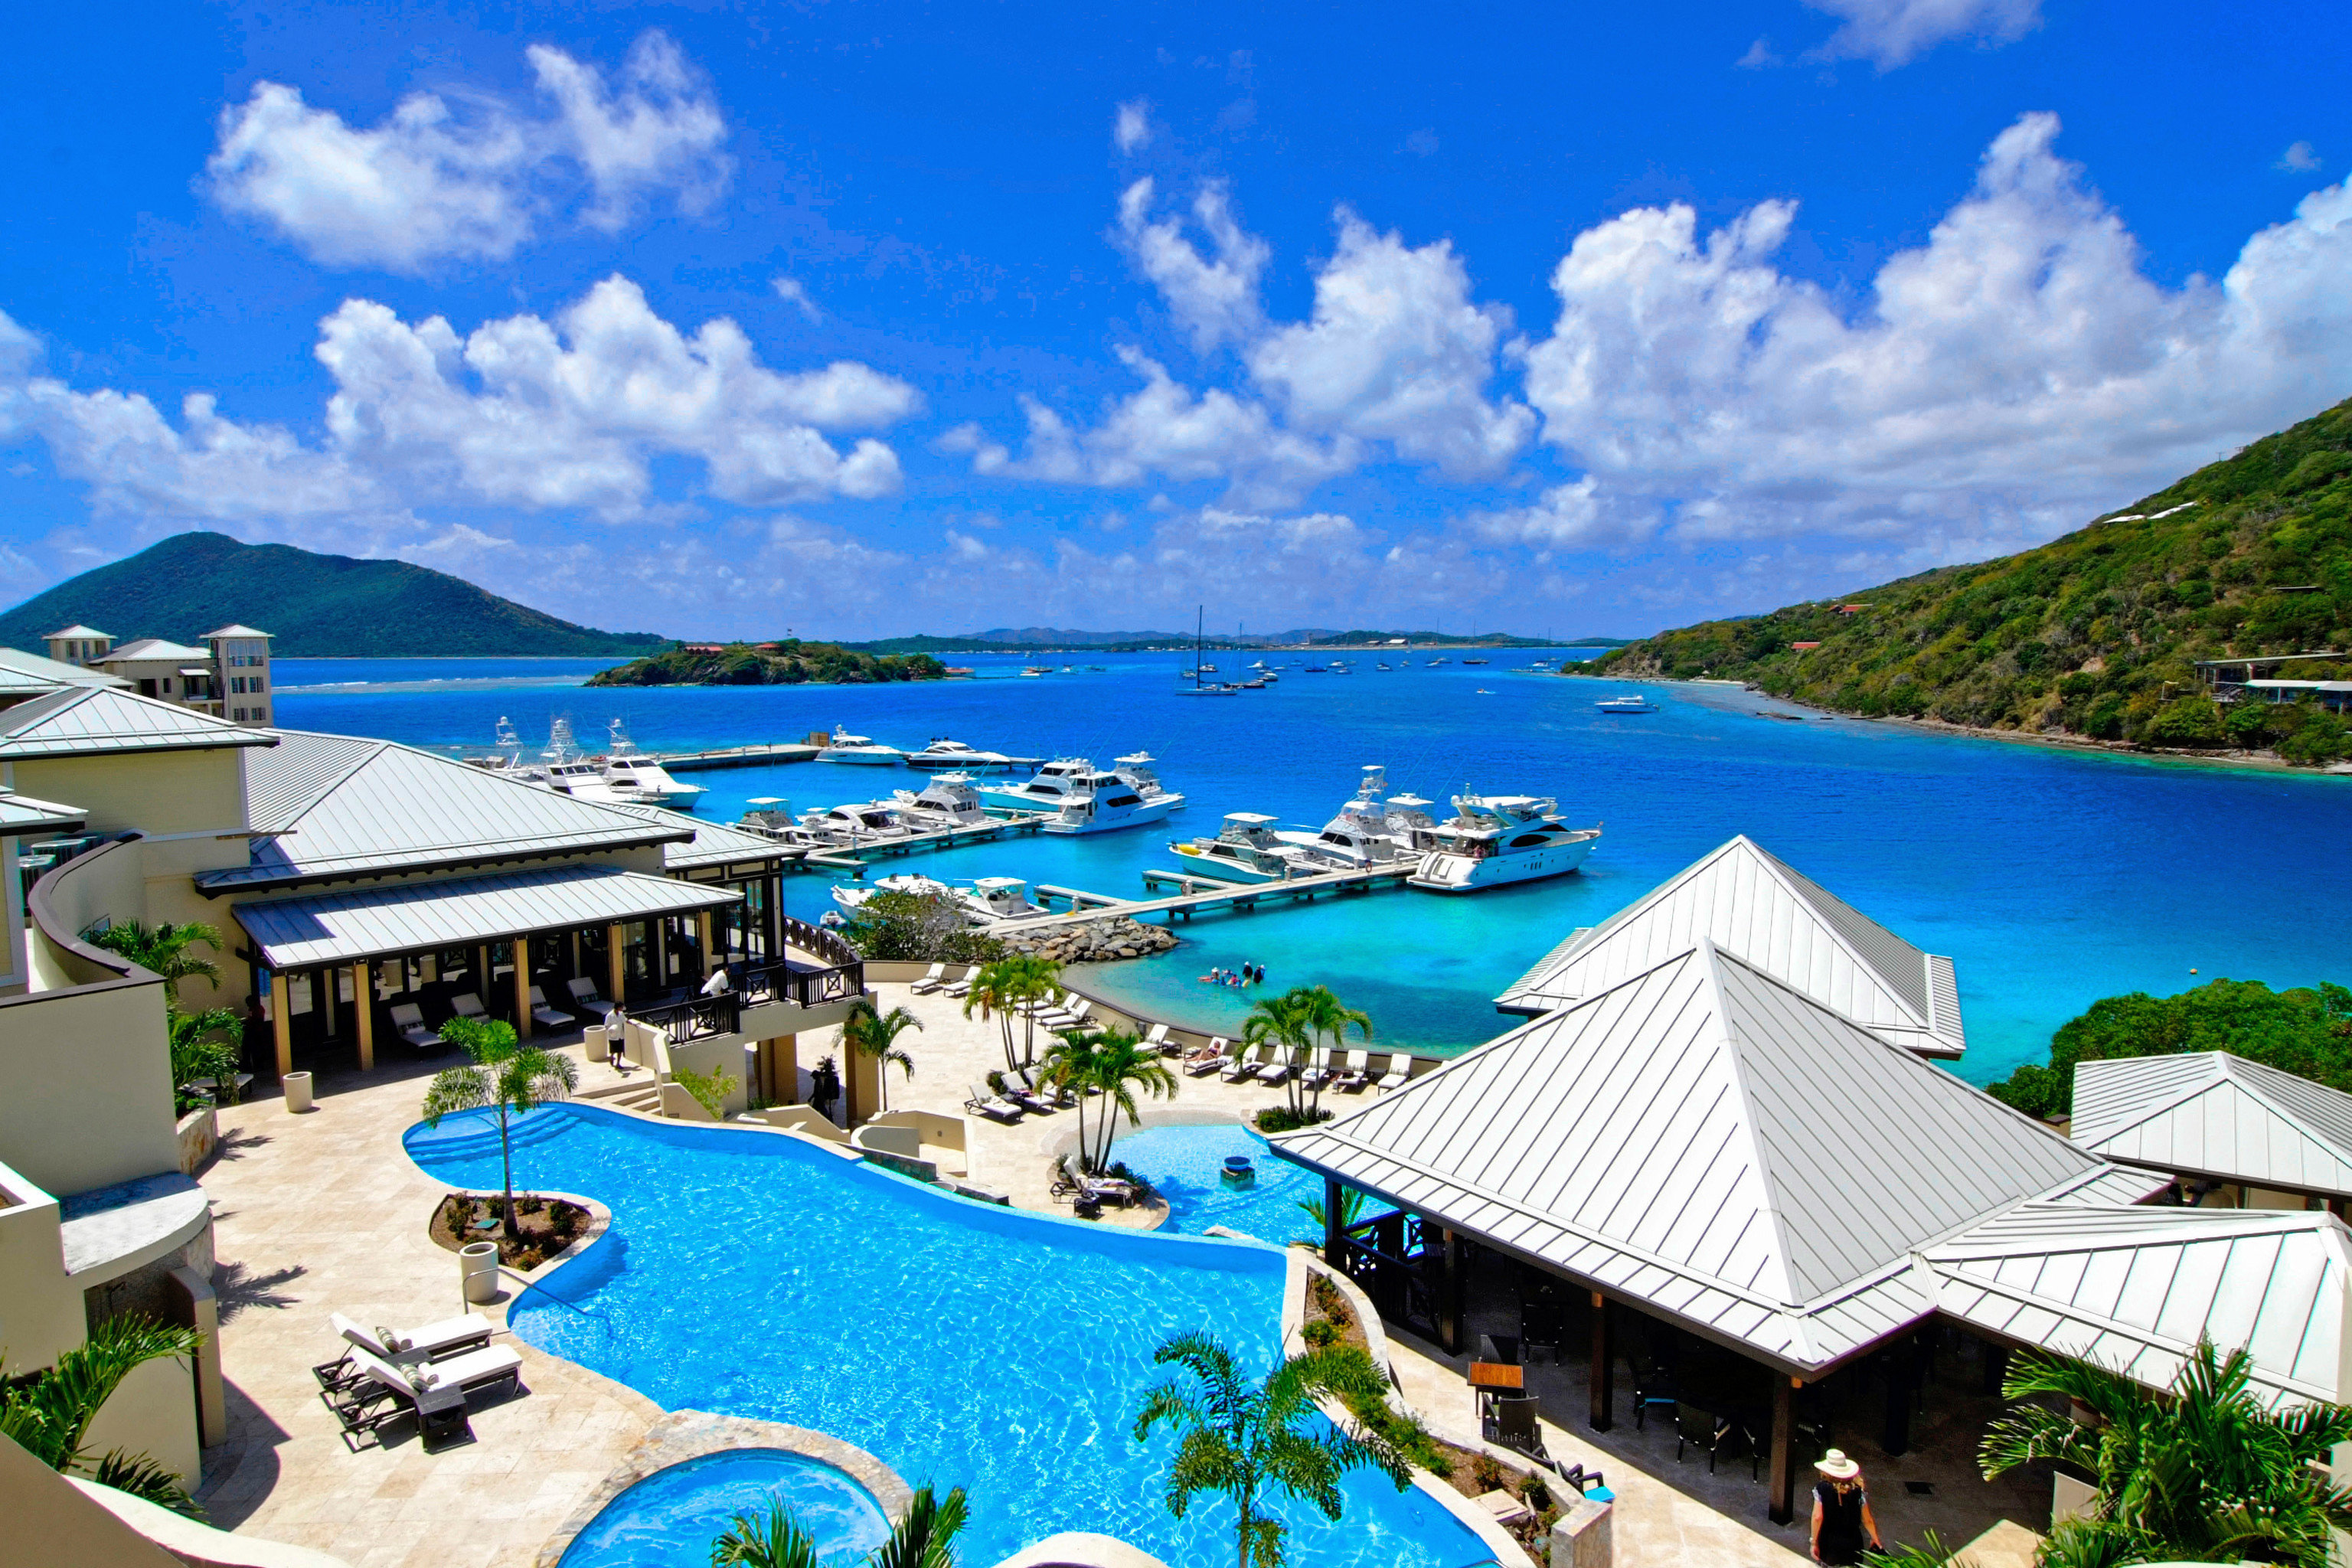 All-inclusive Beach Beachfront Dining Luxury Ocean Pool Secret Getaways Trip Ideas sky outdoor mountain geographical feature leisure Resort caribbean vacation estate swimming pool resort town Nature bay Sea Lagoon overlooking